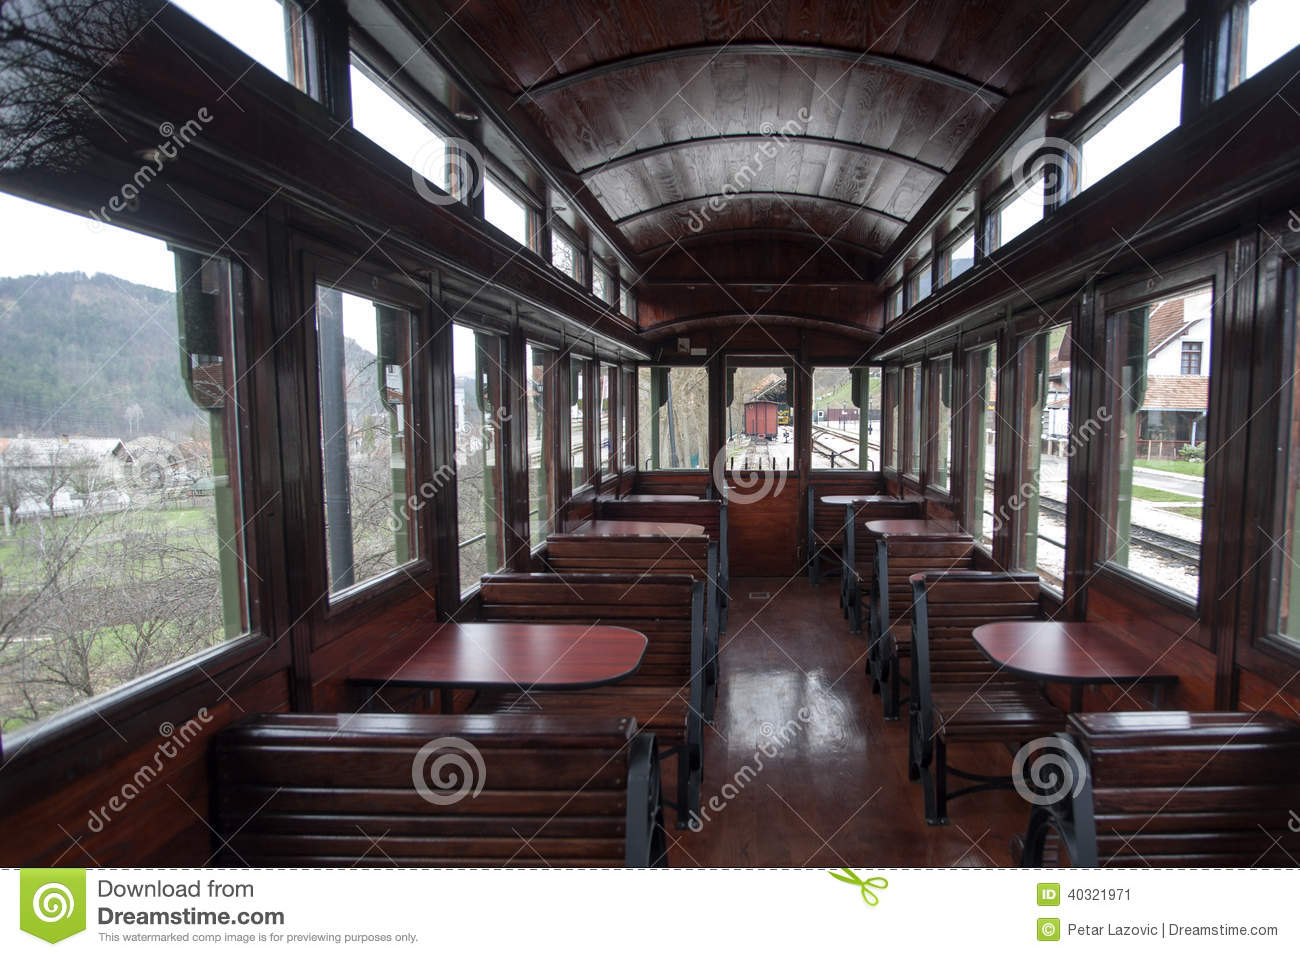 interior of luxury old train carriage stock image image of carriage transport 40321971. Black Bedroom Furniture Sets. Home Design Ideas